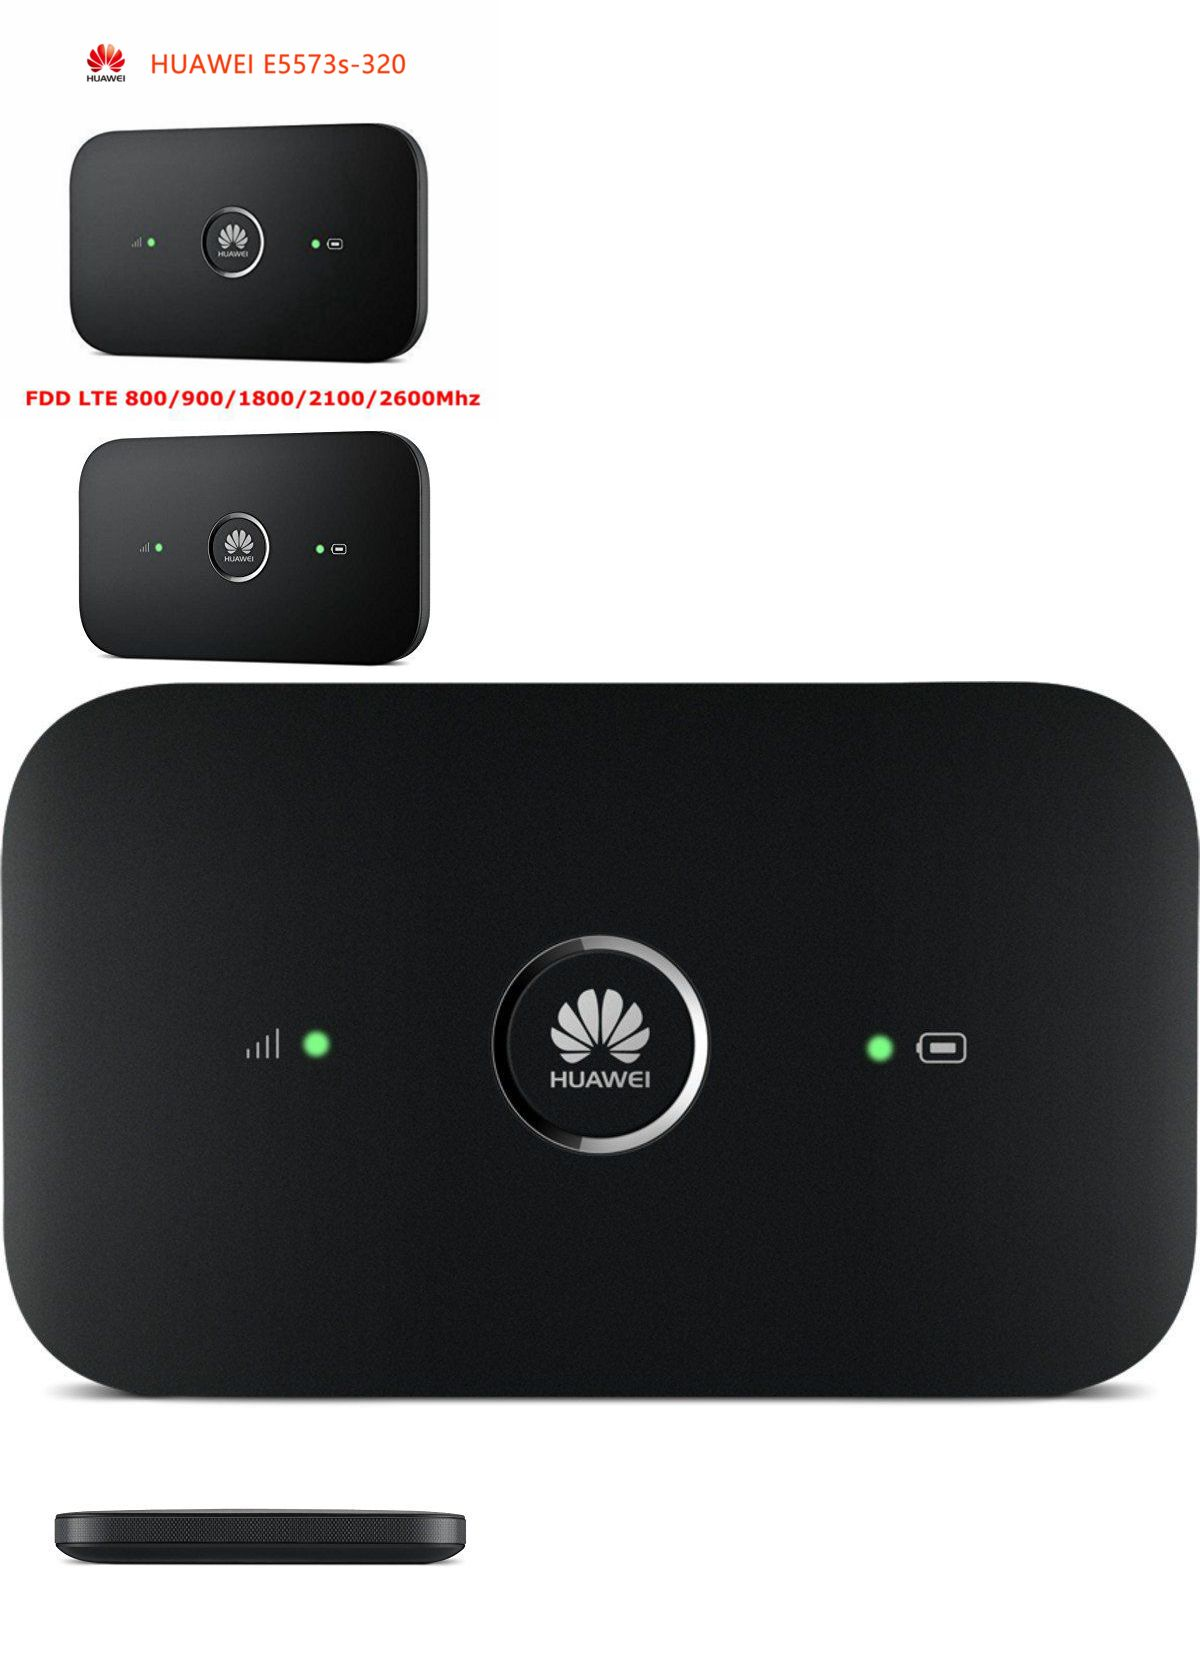 Mobile Broadband Devices 175710 Unlocked Huawei E5573s 320 Lte Fdd 4g 3g Wireless Hotspot Wifi Router 150mbps Buy It Now Only 40 77 On Ebay Mobile Broa